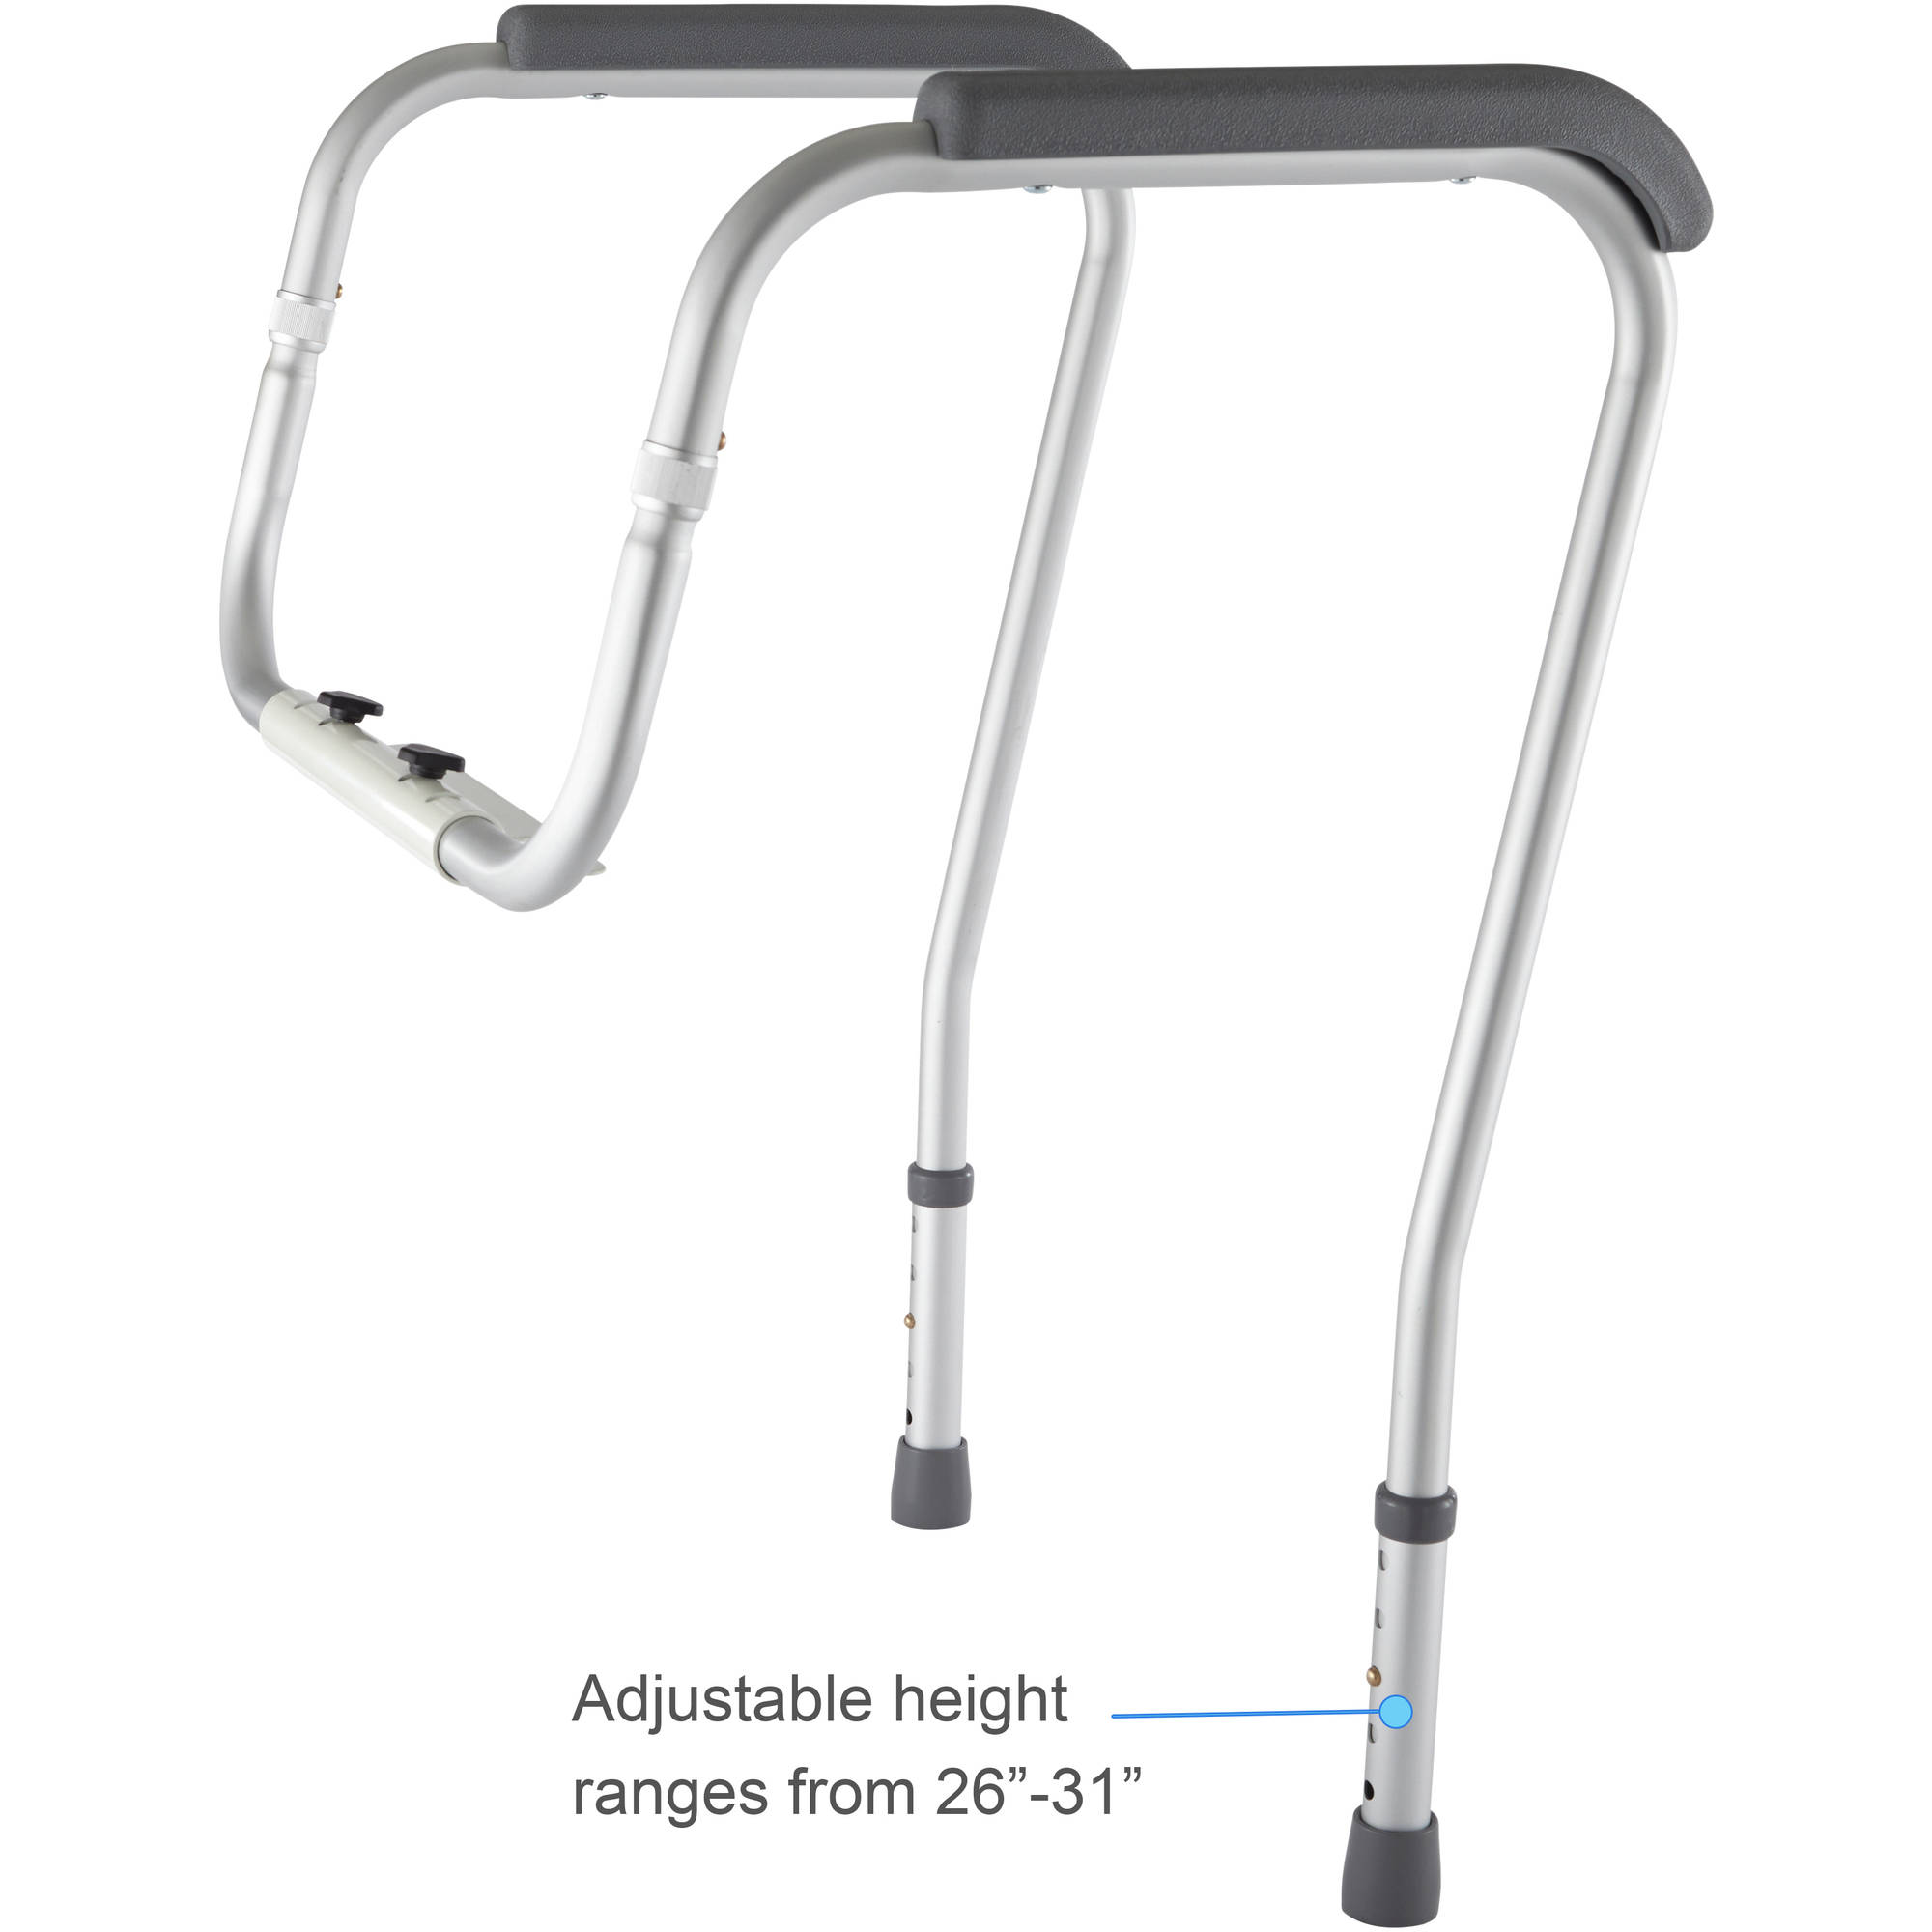 Medline Toilet Safety Frame Rails - Walmart.com